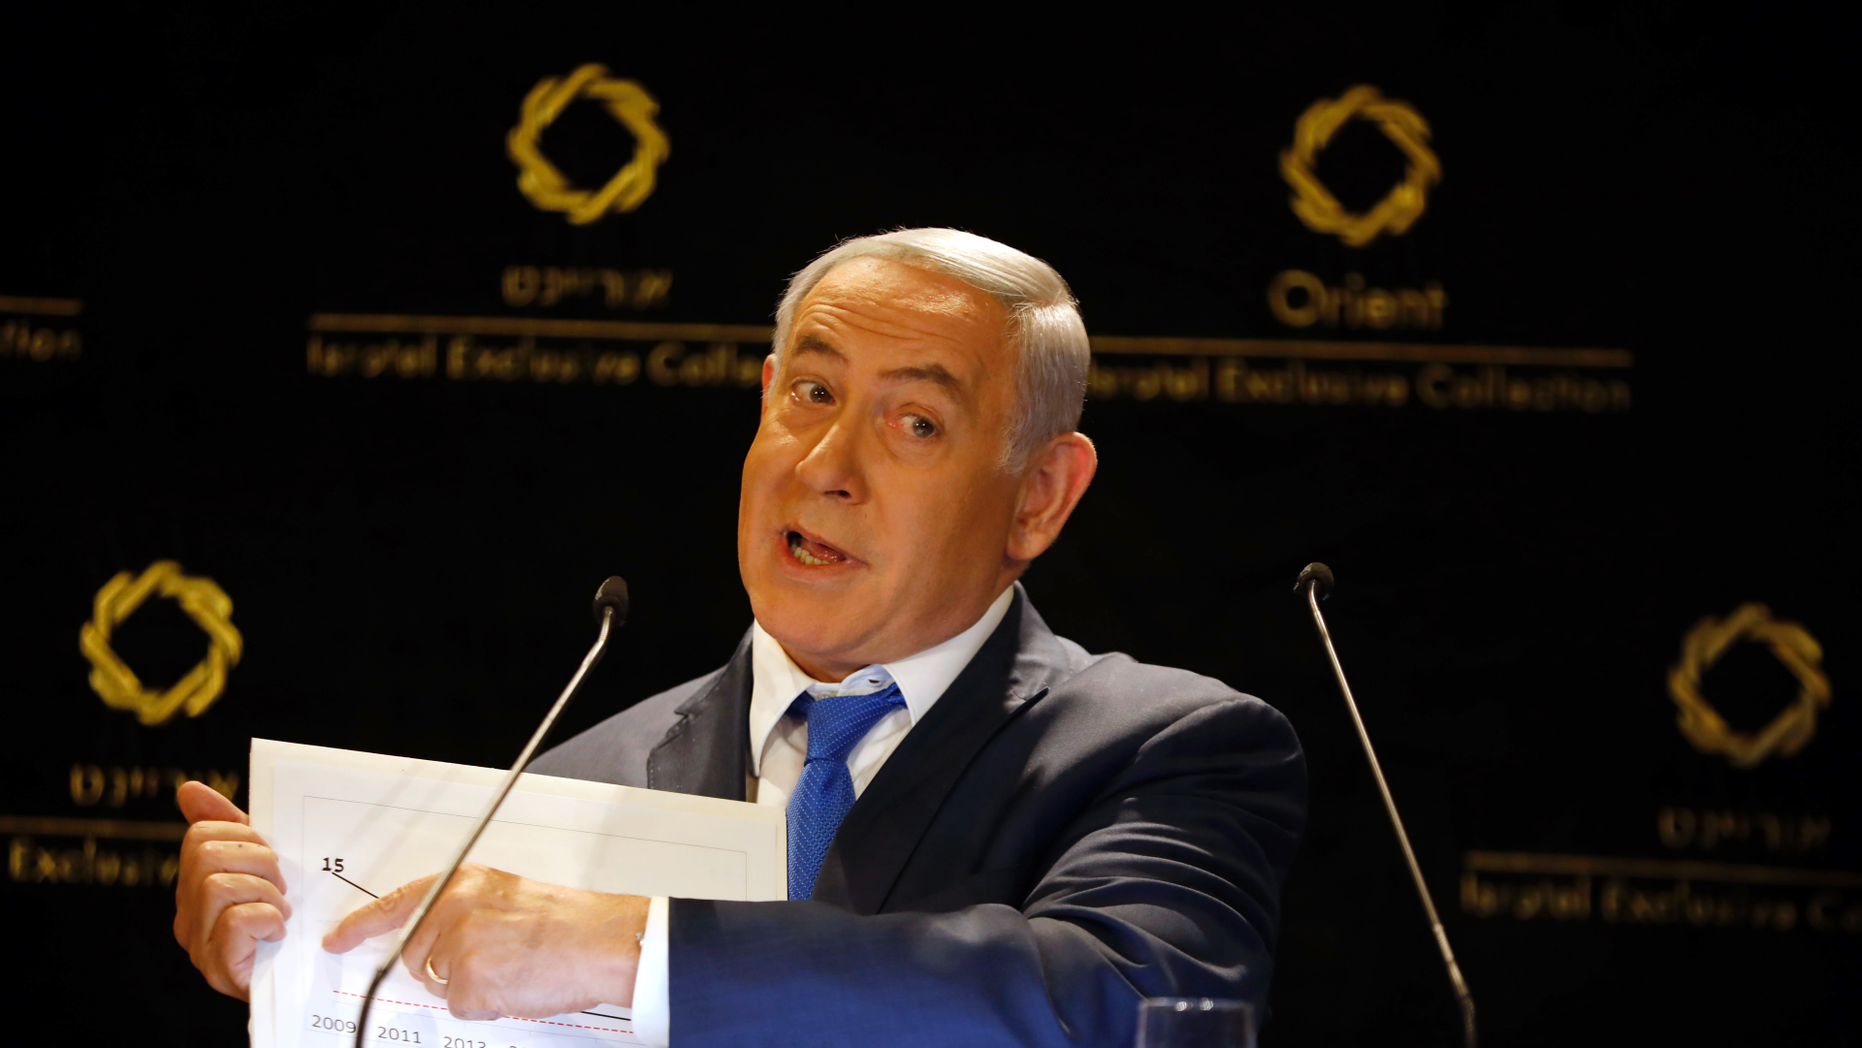 FILE - In this Thursday, May 30, 2019 file photo, Israeli Prime Minister Benjamin Netanyahu gives a statement to the press in Jerusalem. After narrowly failing to oust PM Benjamin Netanyahu in April elections, the long-time Israeli leader's opponents now have a rare chance for a 'do-over' in a snap vote in September. (AP Photo/Ariel Schalit, File)